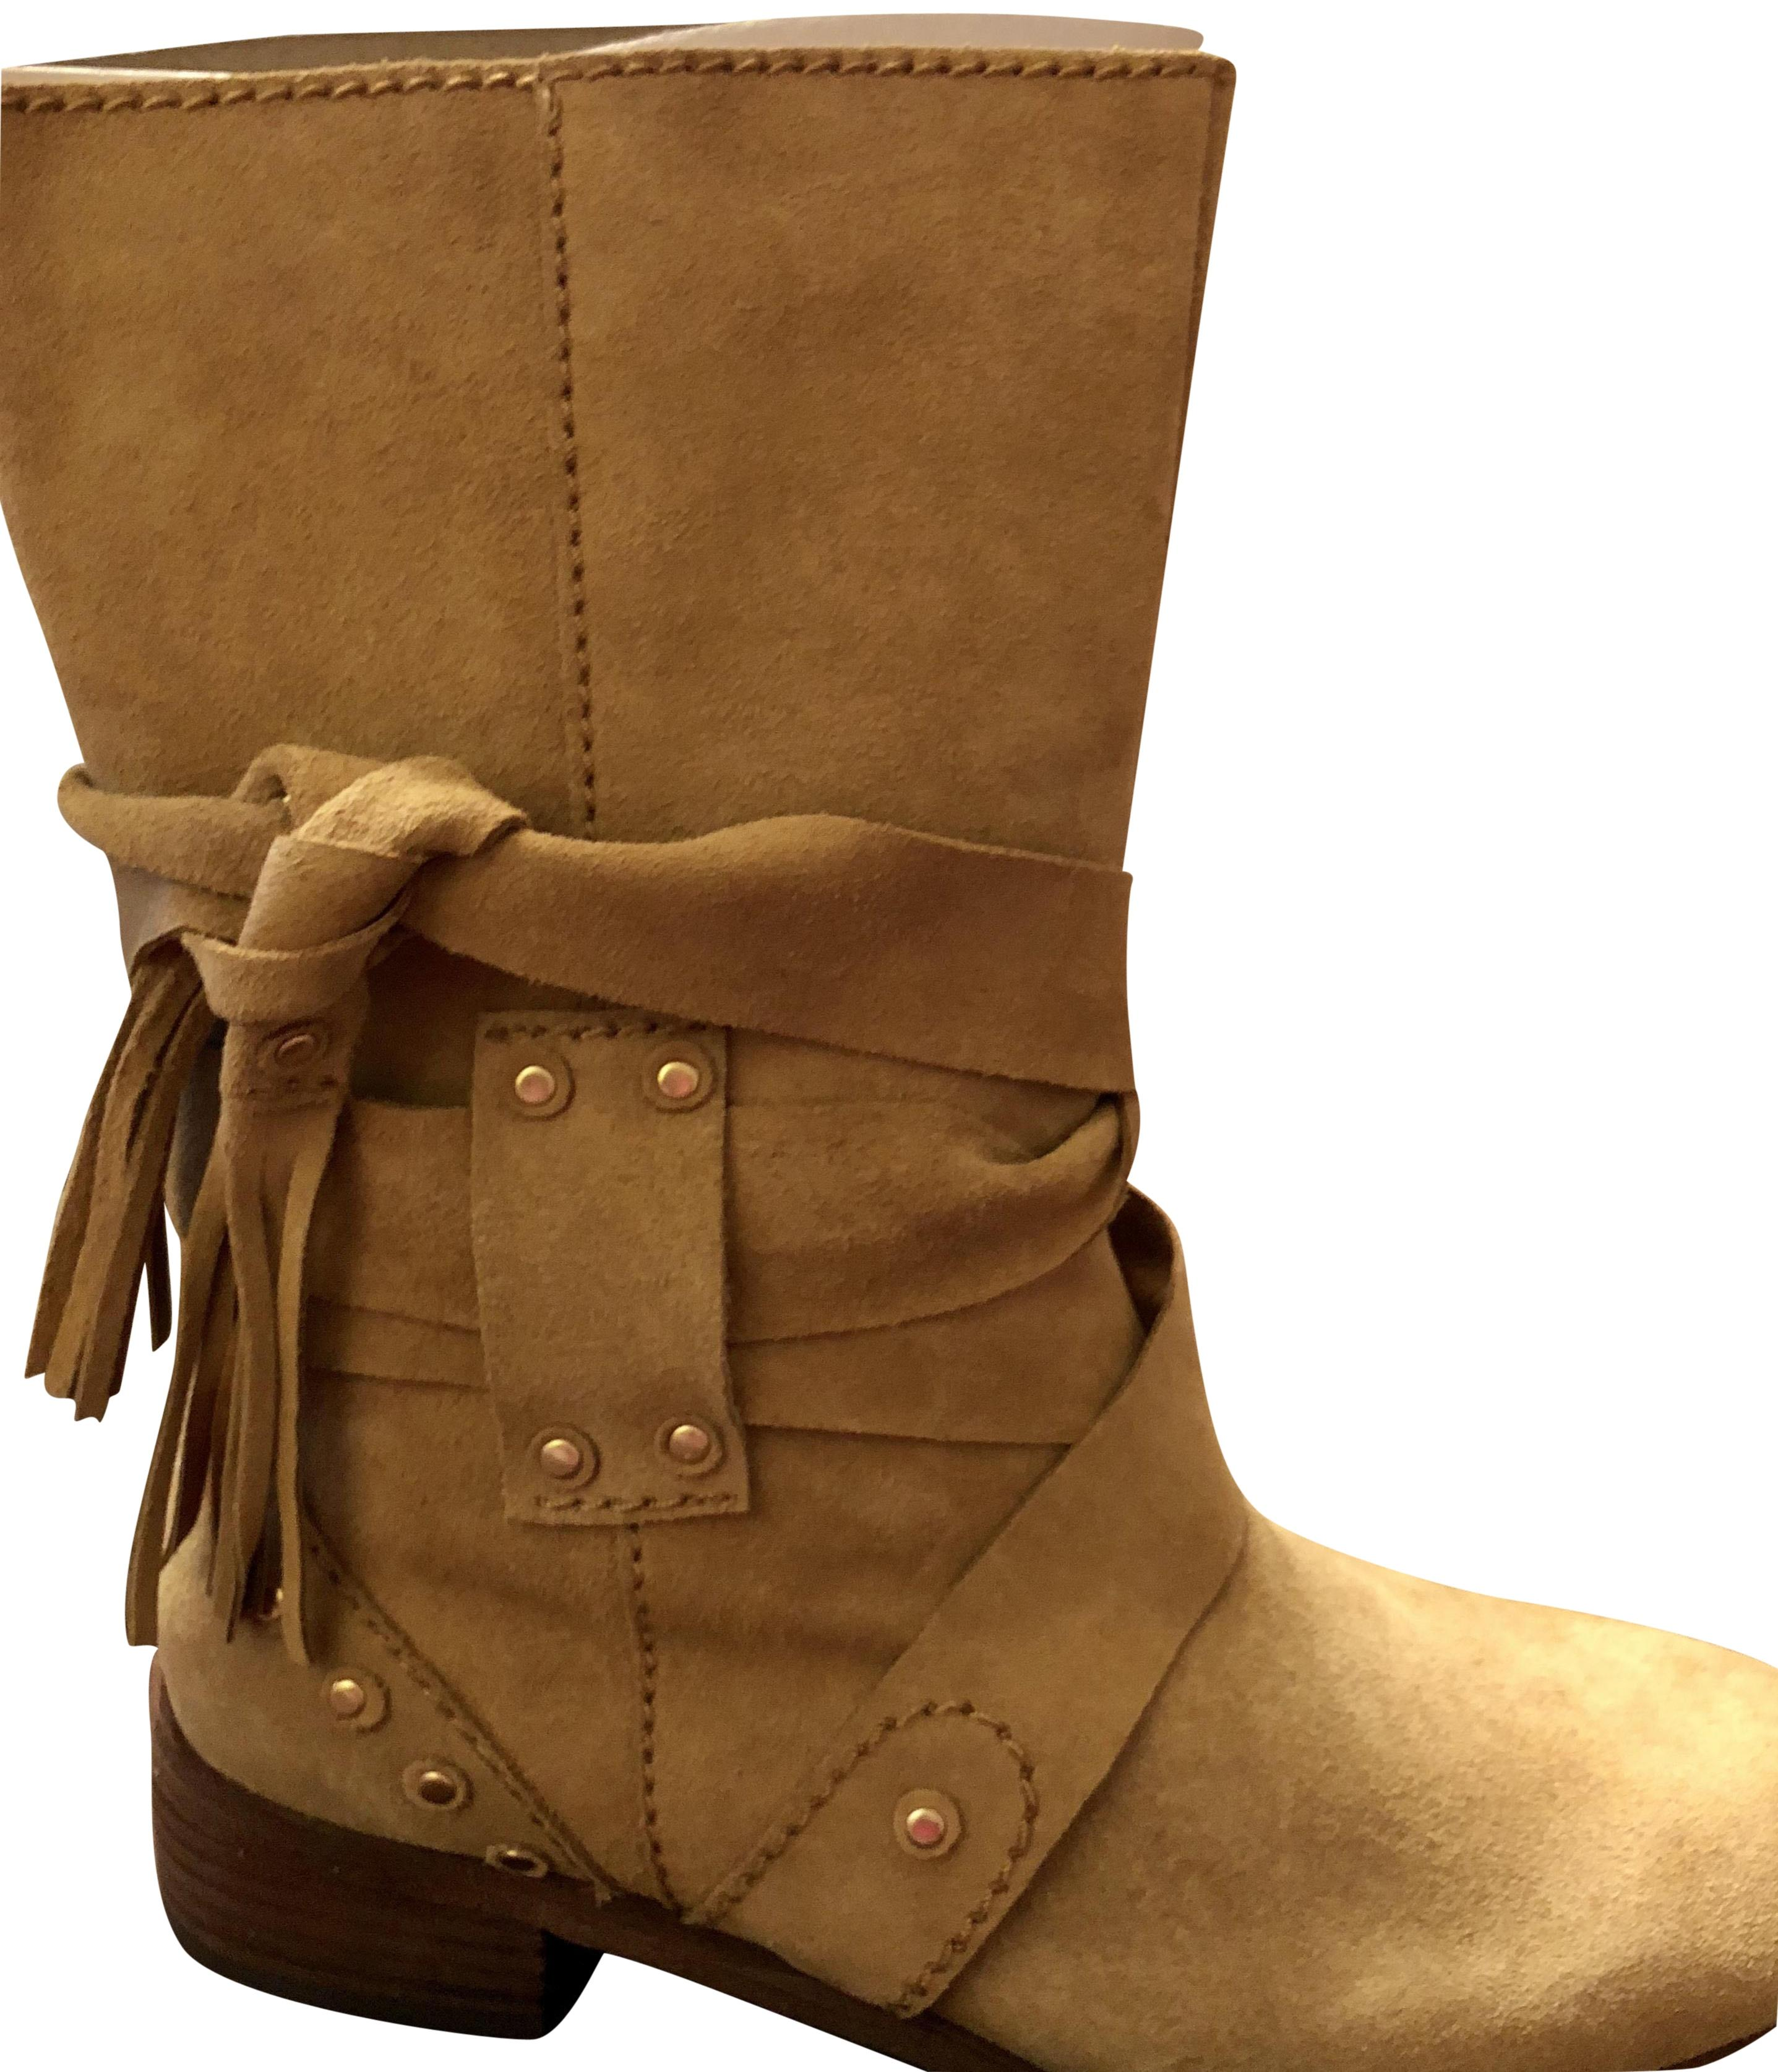 See by Chloé This Week --were--279.00--tan Boots/Booties Size US 7.5 Regular (M, B)